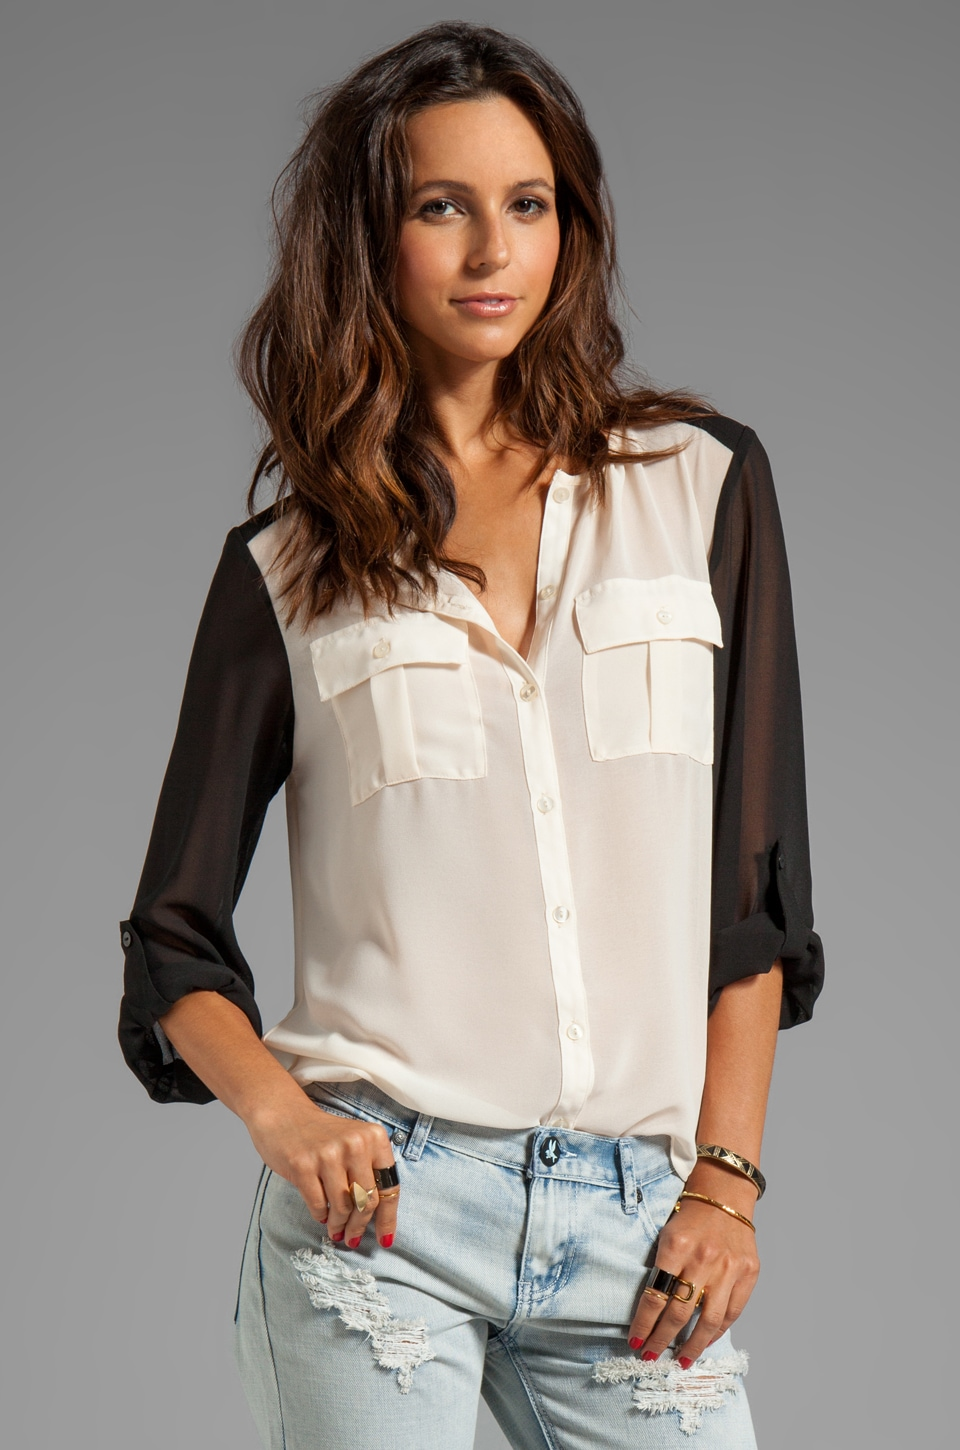 Sanctuary Modern Nomad Color Block Blouse in Ivory/Black